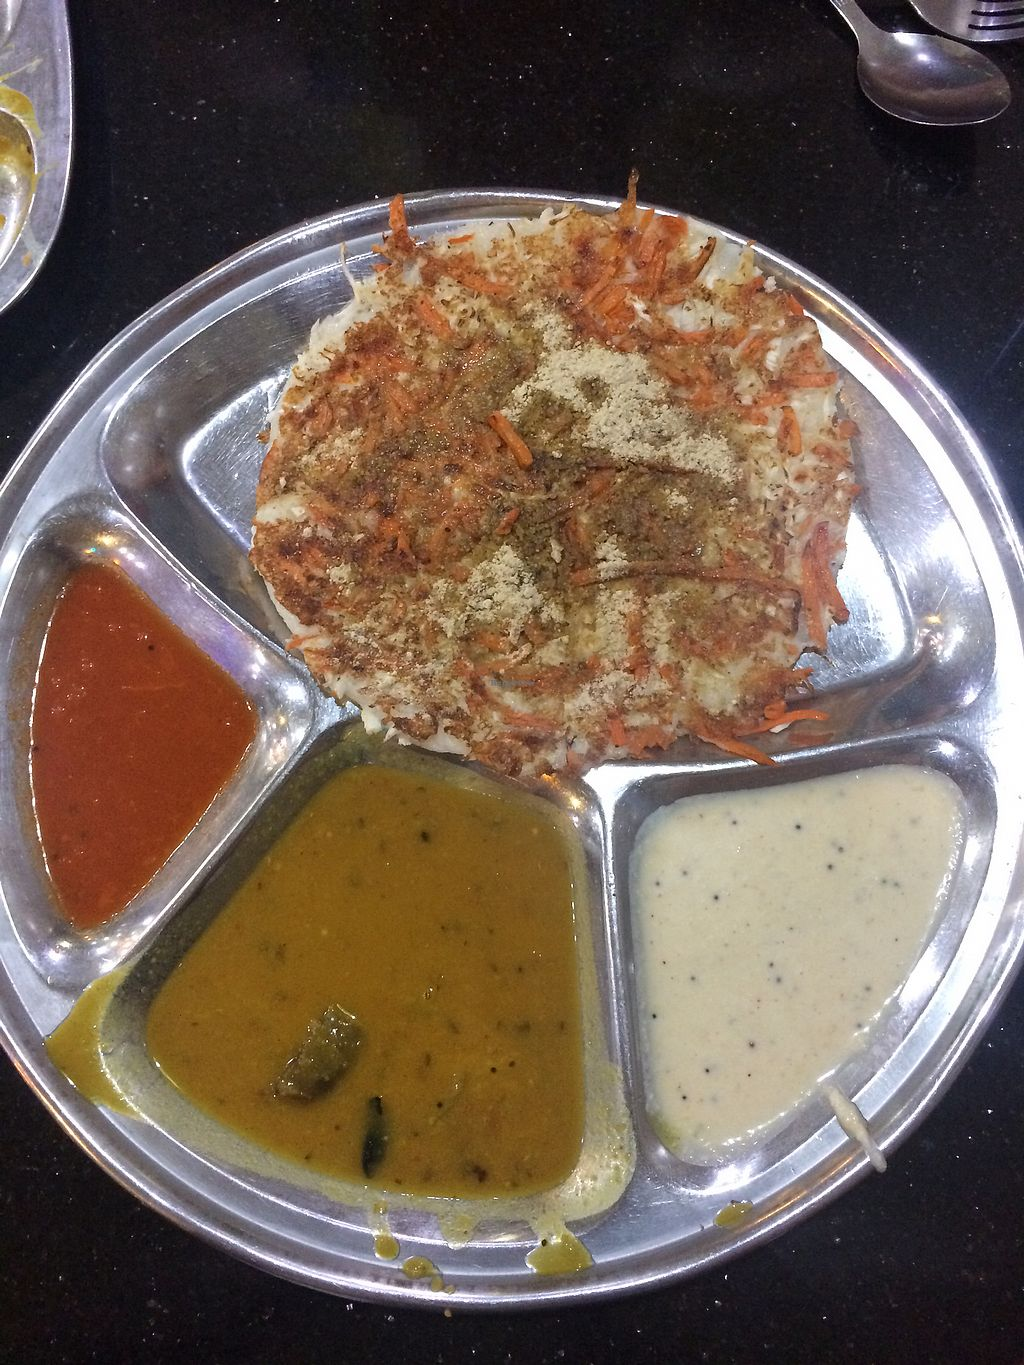 """Photo of Chat Masala  by <a href=""""/members/profile/LaurenceMontreuil"""">LaurenceMontreuil</a> <br/>Uthapam <br/> February 21, 2018  - <a href='/contact/abuse/image/9449/362042'>Report</a>"""